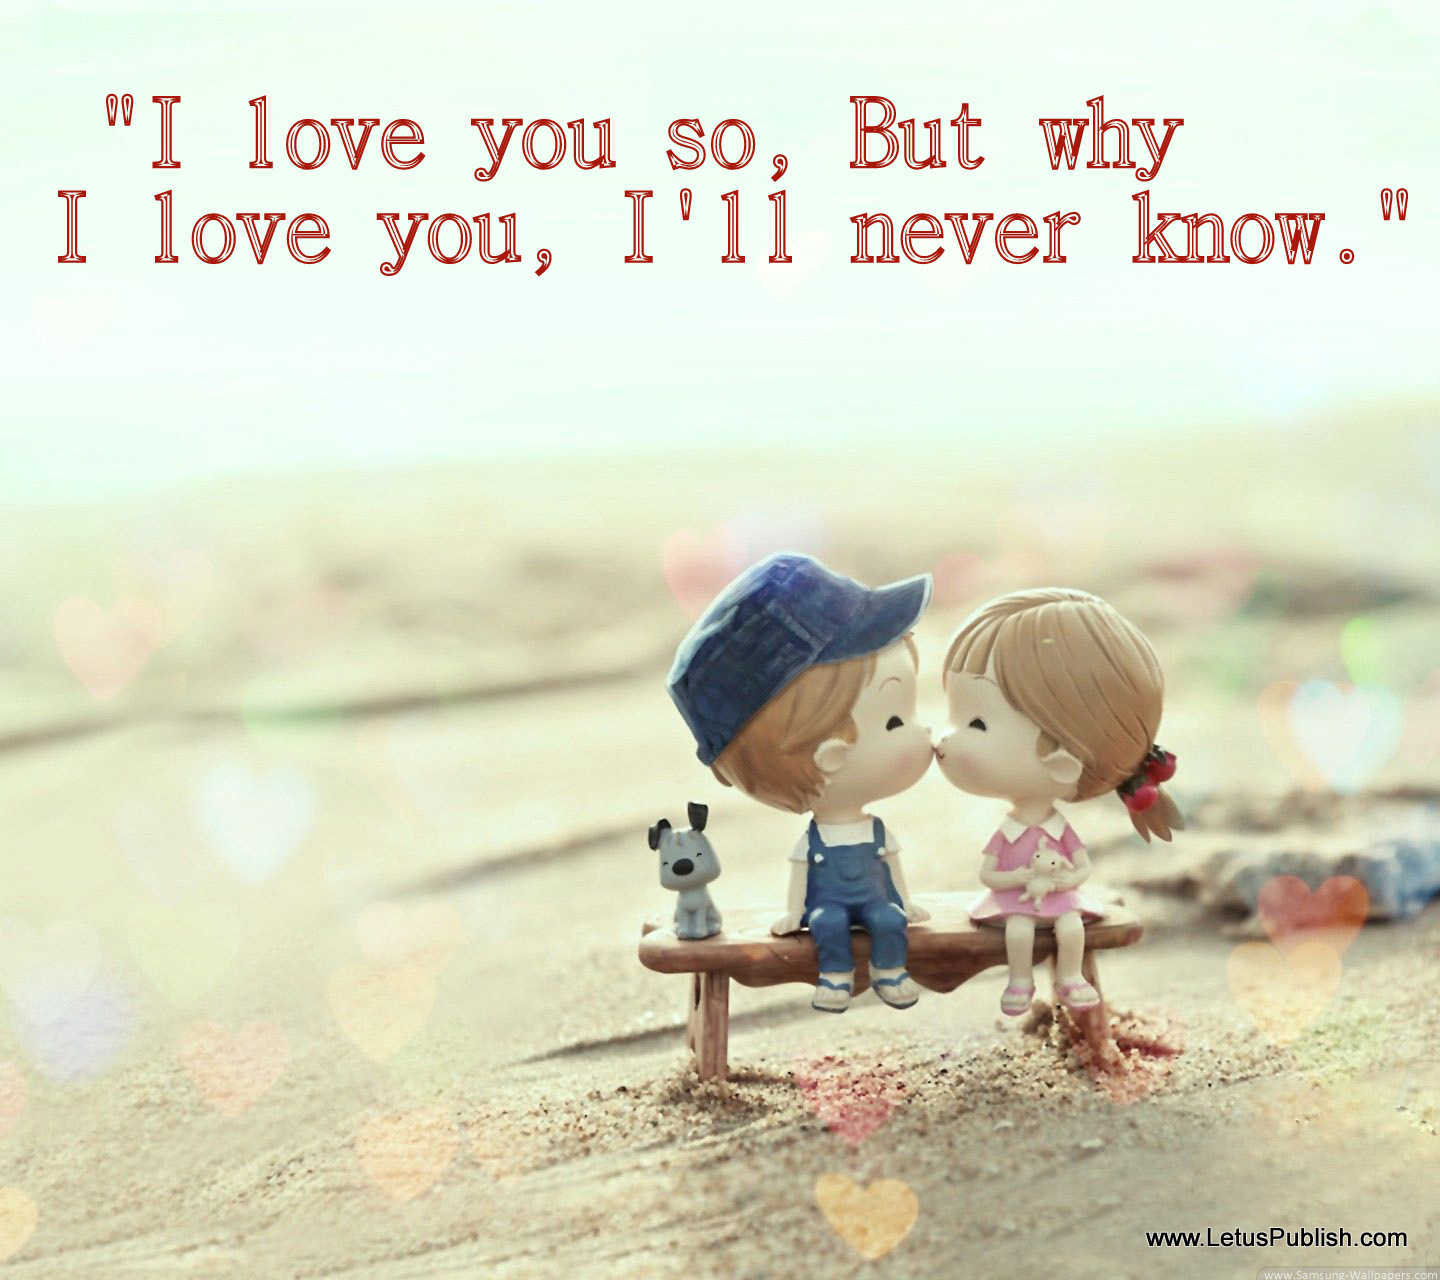 Cute Love Quotes Beautiful Romantic Love Hd Wallpapers For Couples  Let Us Publish